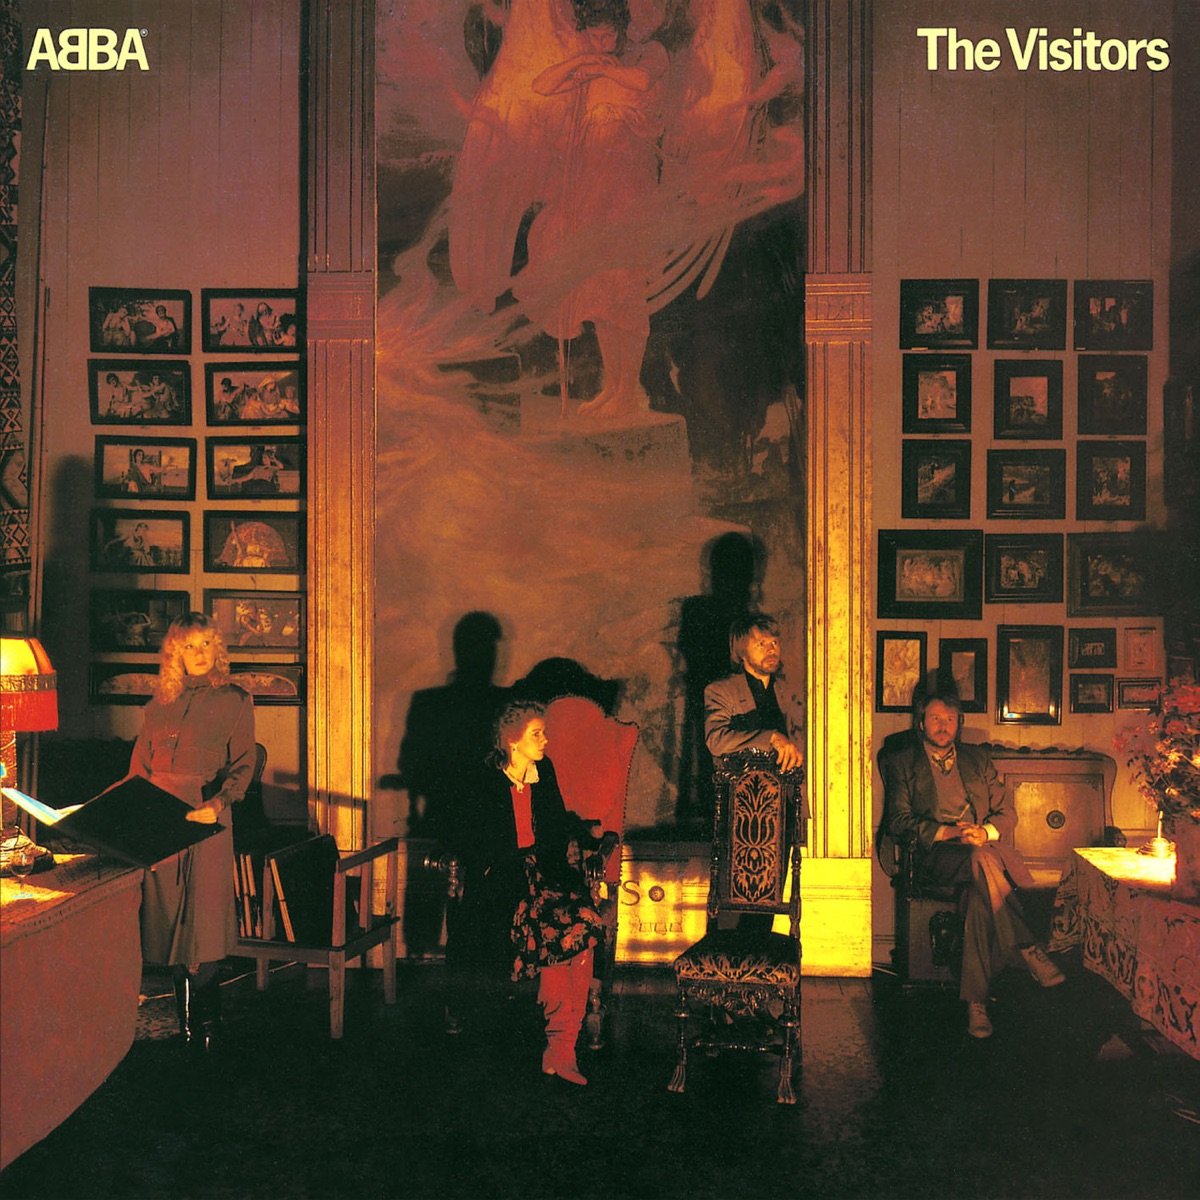 The Visitors ABBA CD cover